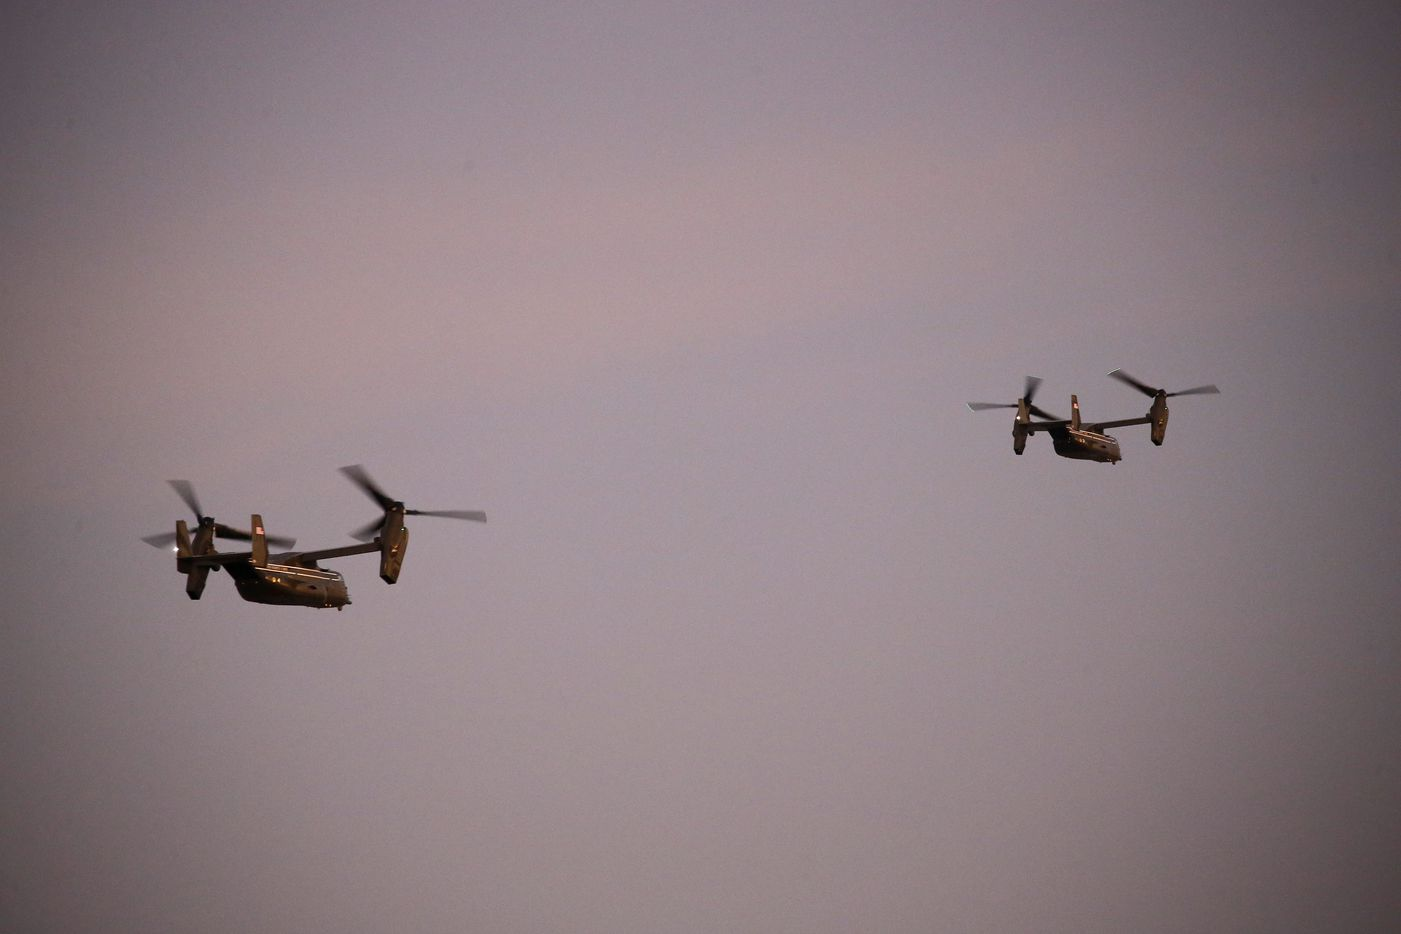 The Marine Helicopter Squadron One (HMX-1) including two escort V-22 Ospreys departs Love Field in Dallas after dropping off President Donald Trump for a rally, Thursday, October 17, 2019. He will hold a campaign rally at the American Airlines Center this evening.